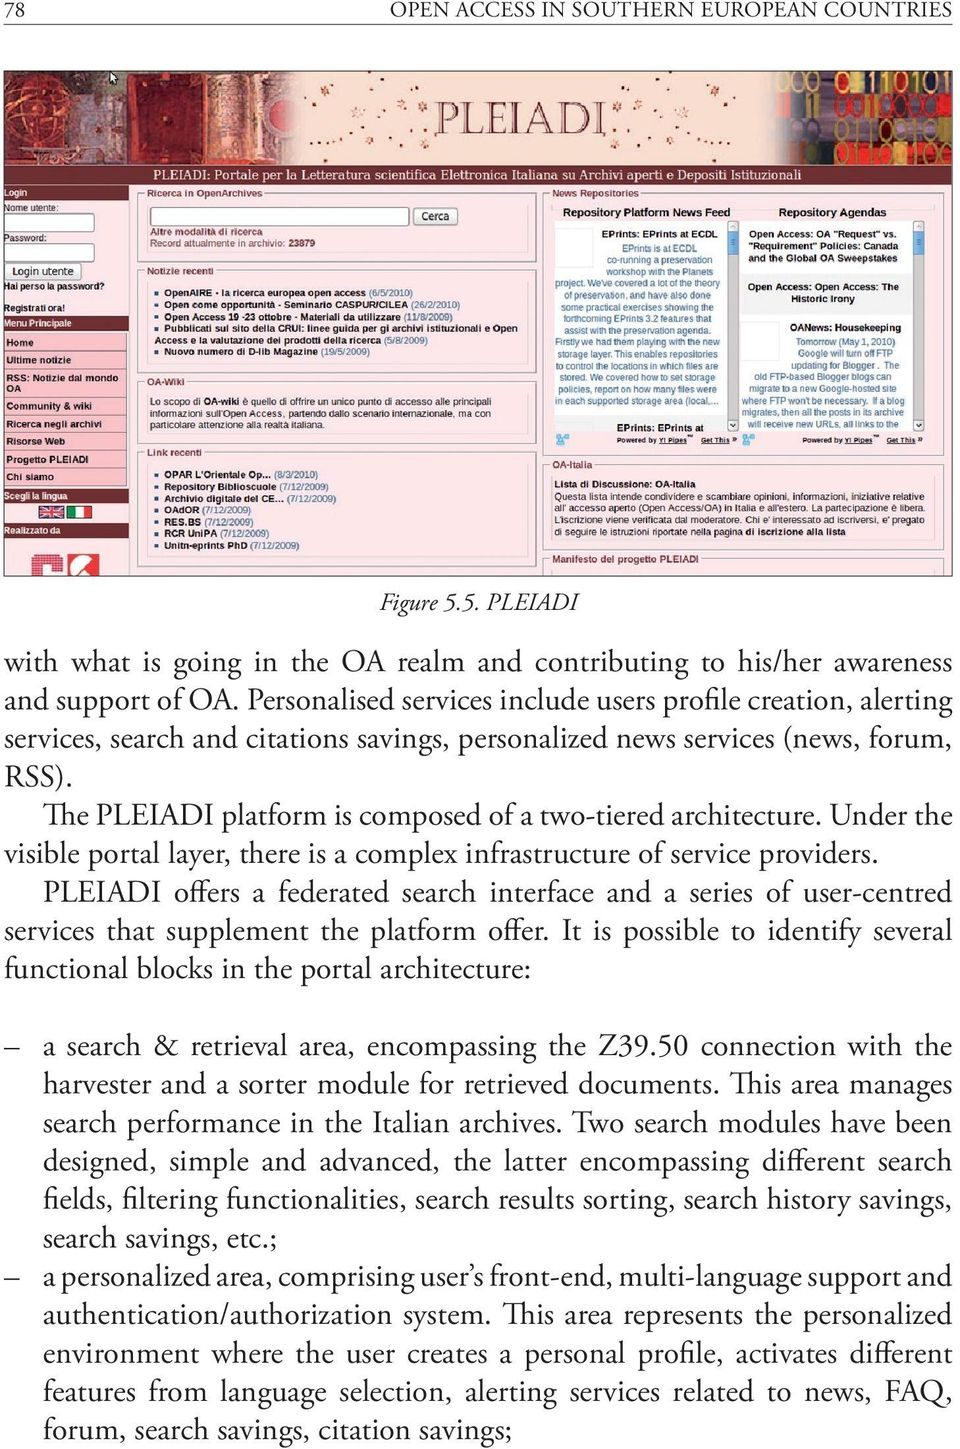 The PLEIADI platform is composed of a two-tiered architecture. Under the visible portal layer, there is a complex infrastructure of service providers.